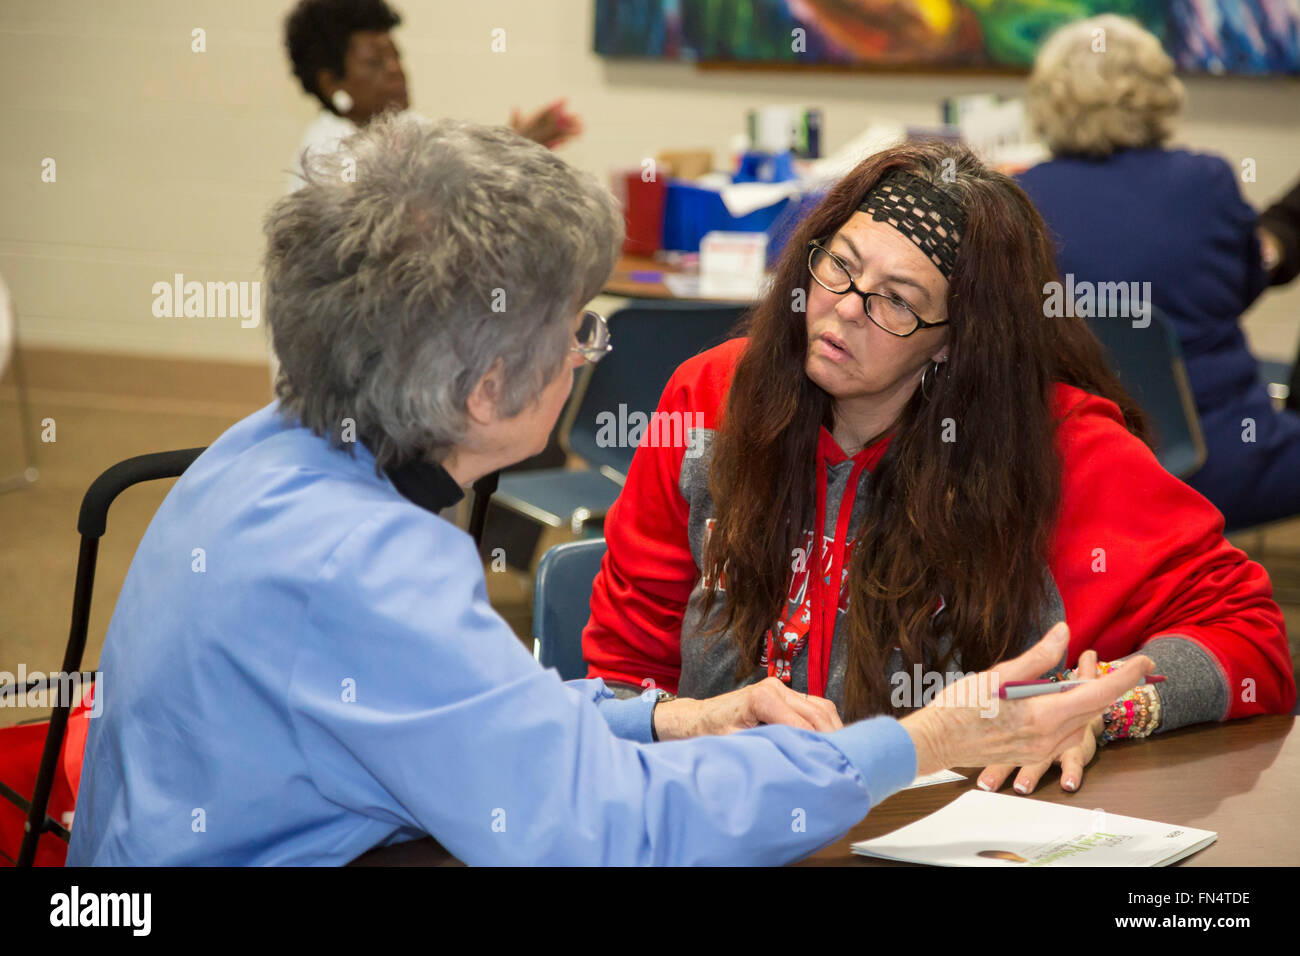 Flint, Michigan - Janet Barnfather (left) explains the results of a blood test for lead exposure to Michele Fiebecker. - Stock Image